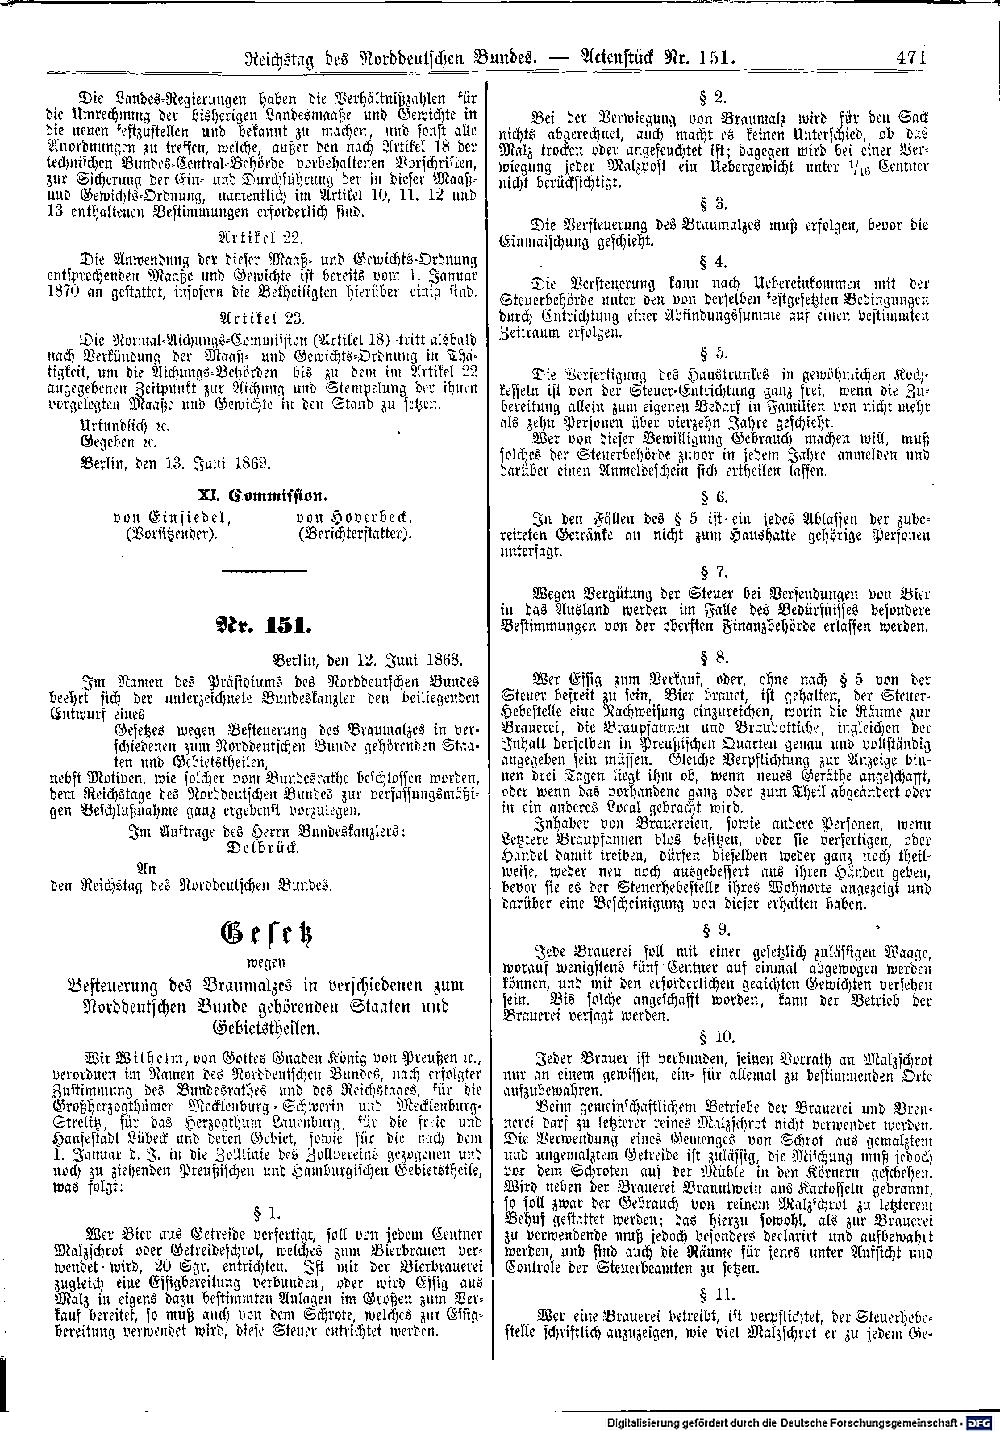 Scan of page 471